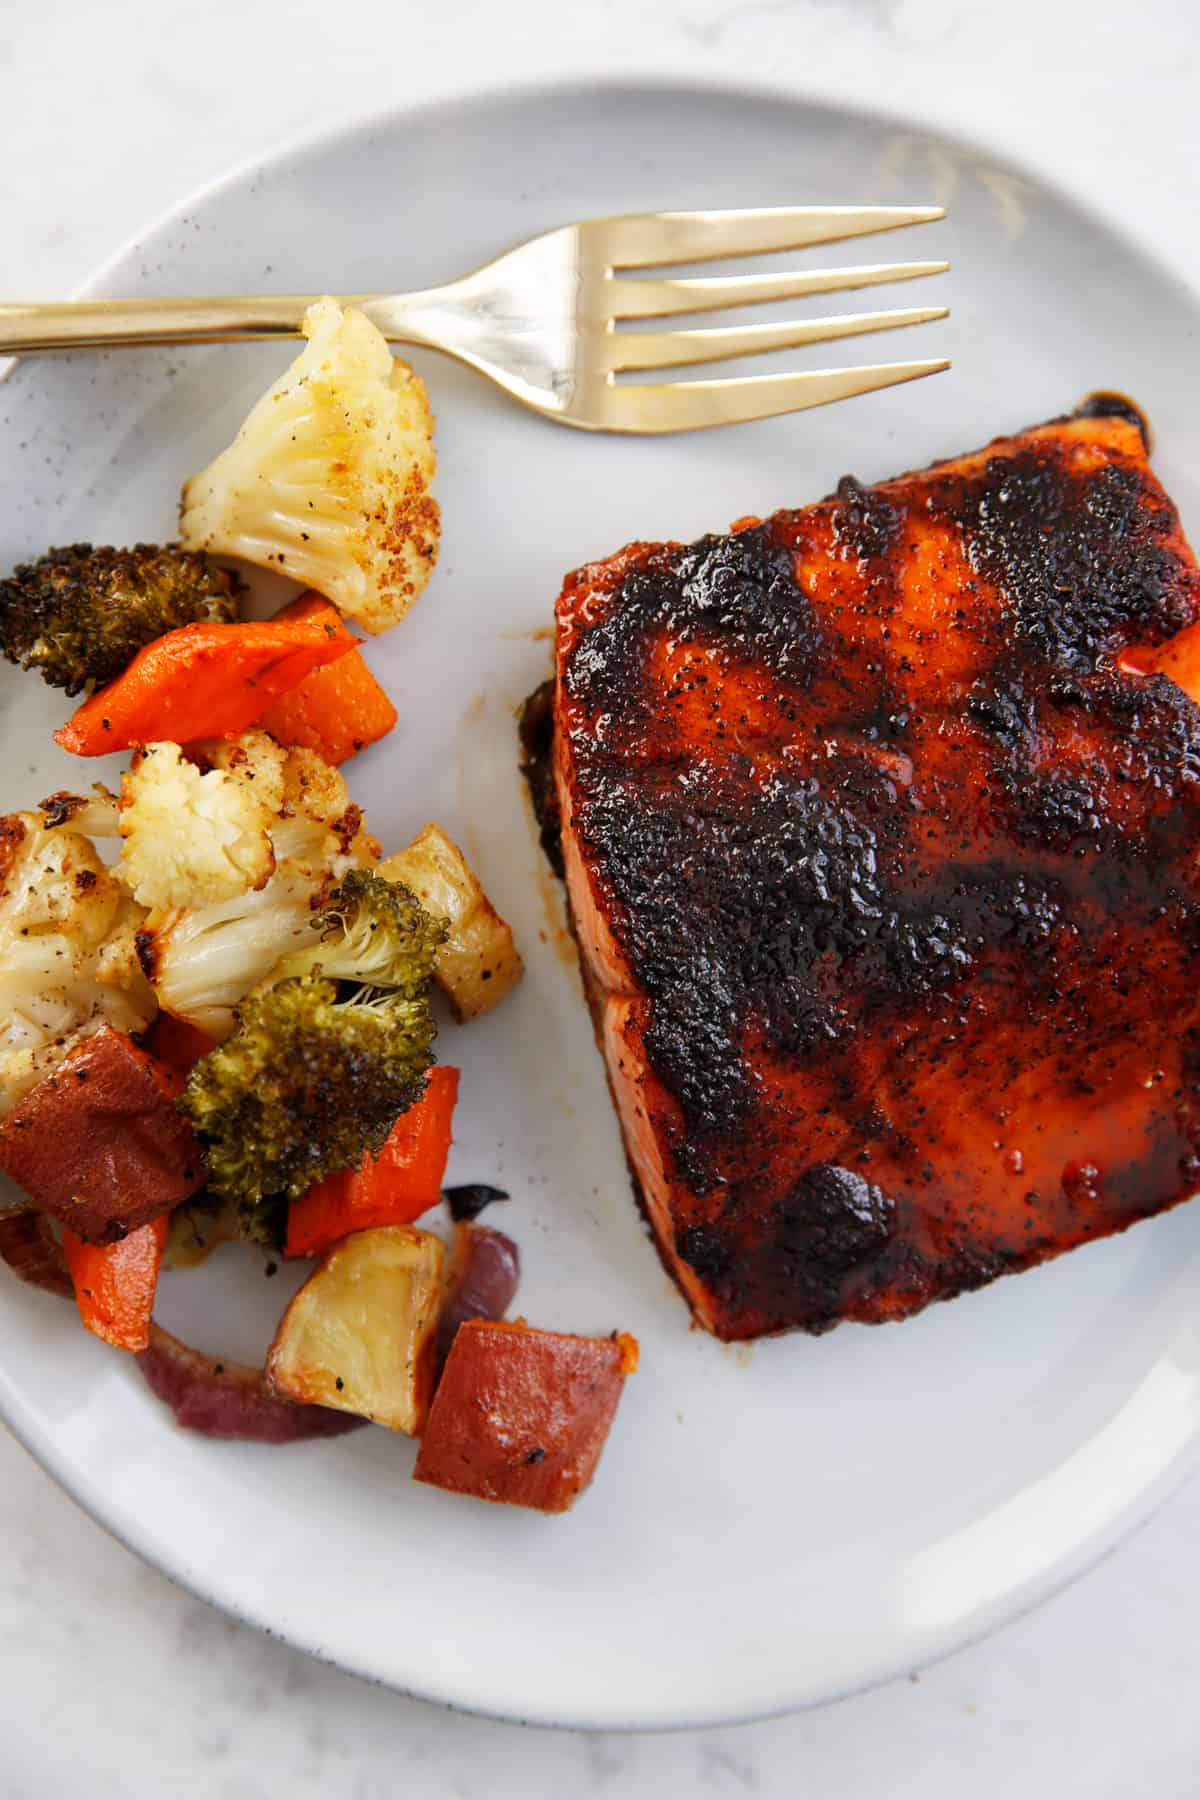 Maple glazed salmon with veggies